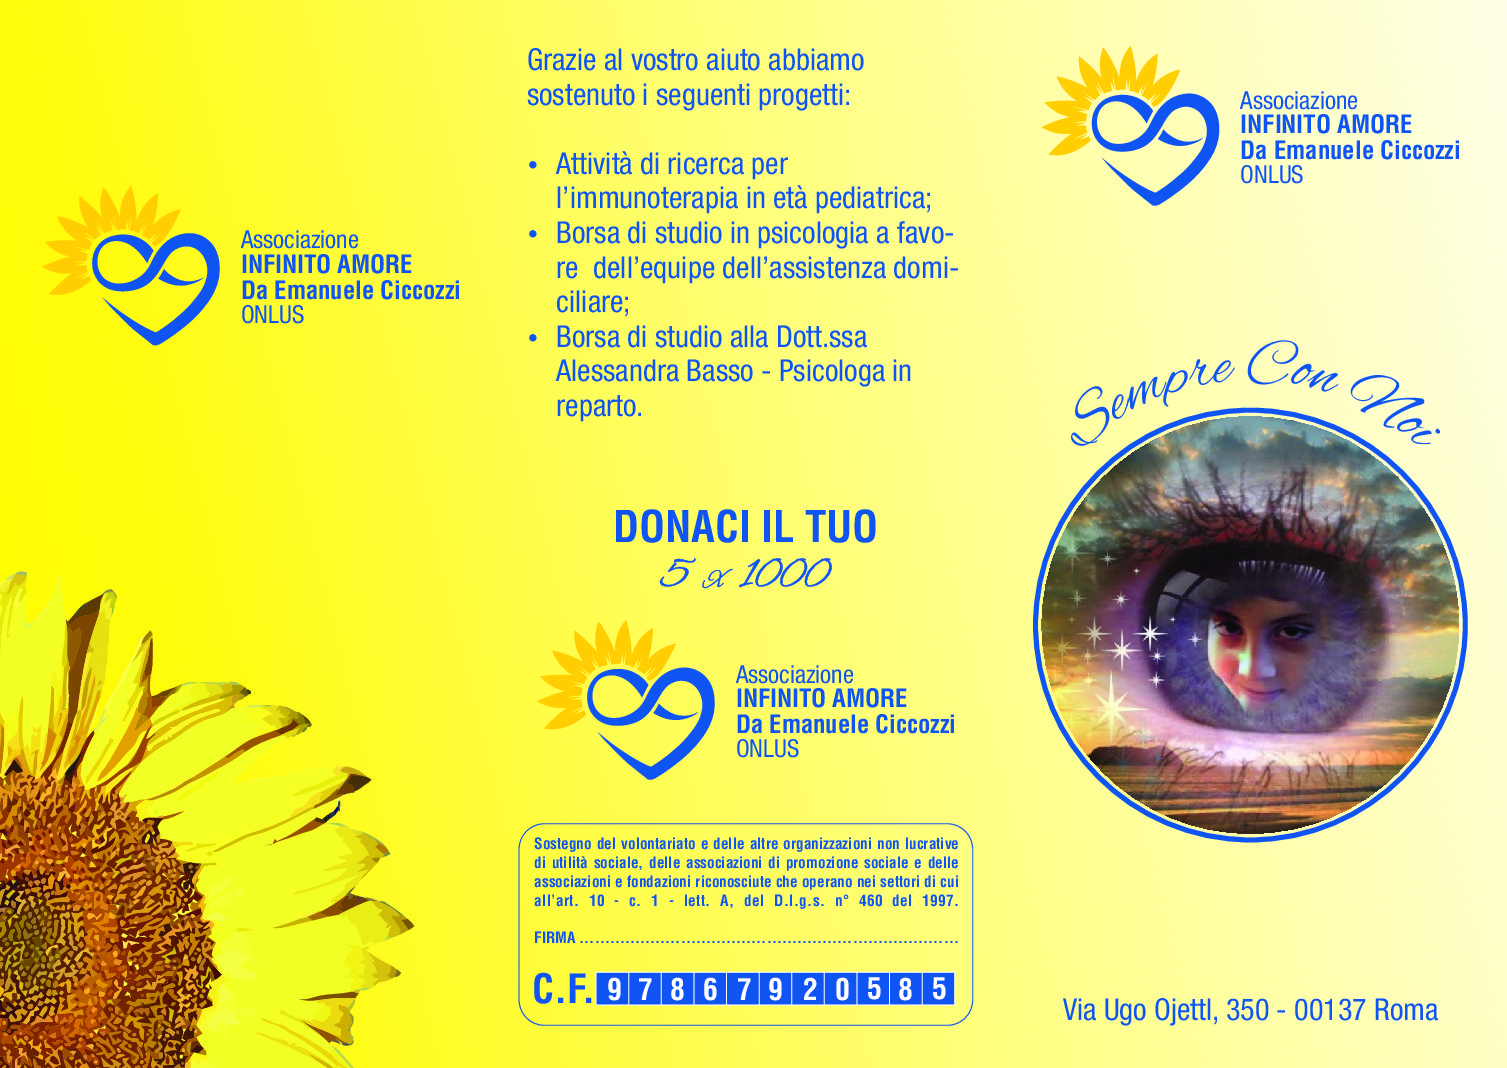 Flyer InfinitoAmore.org